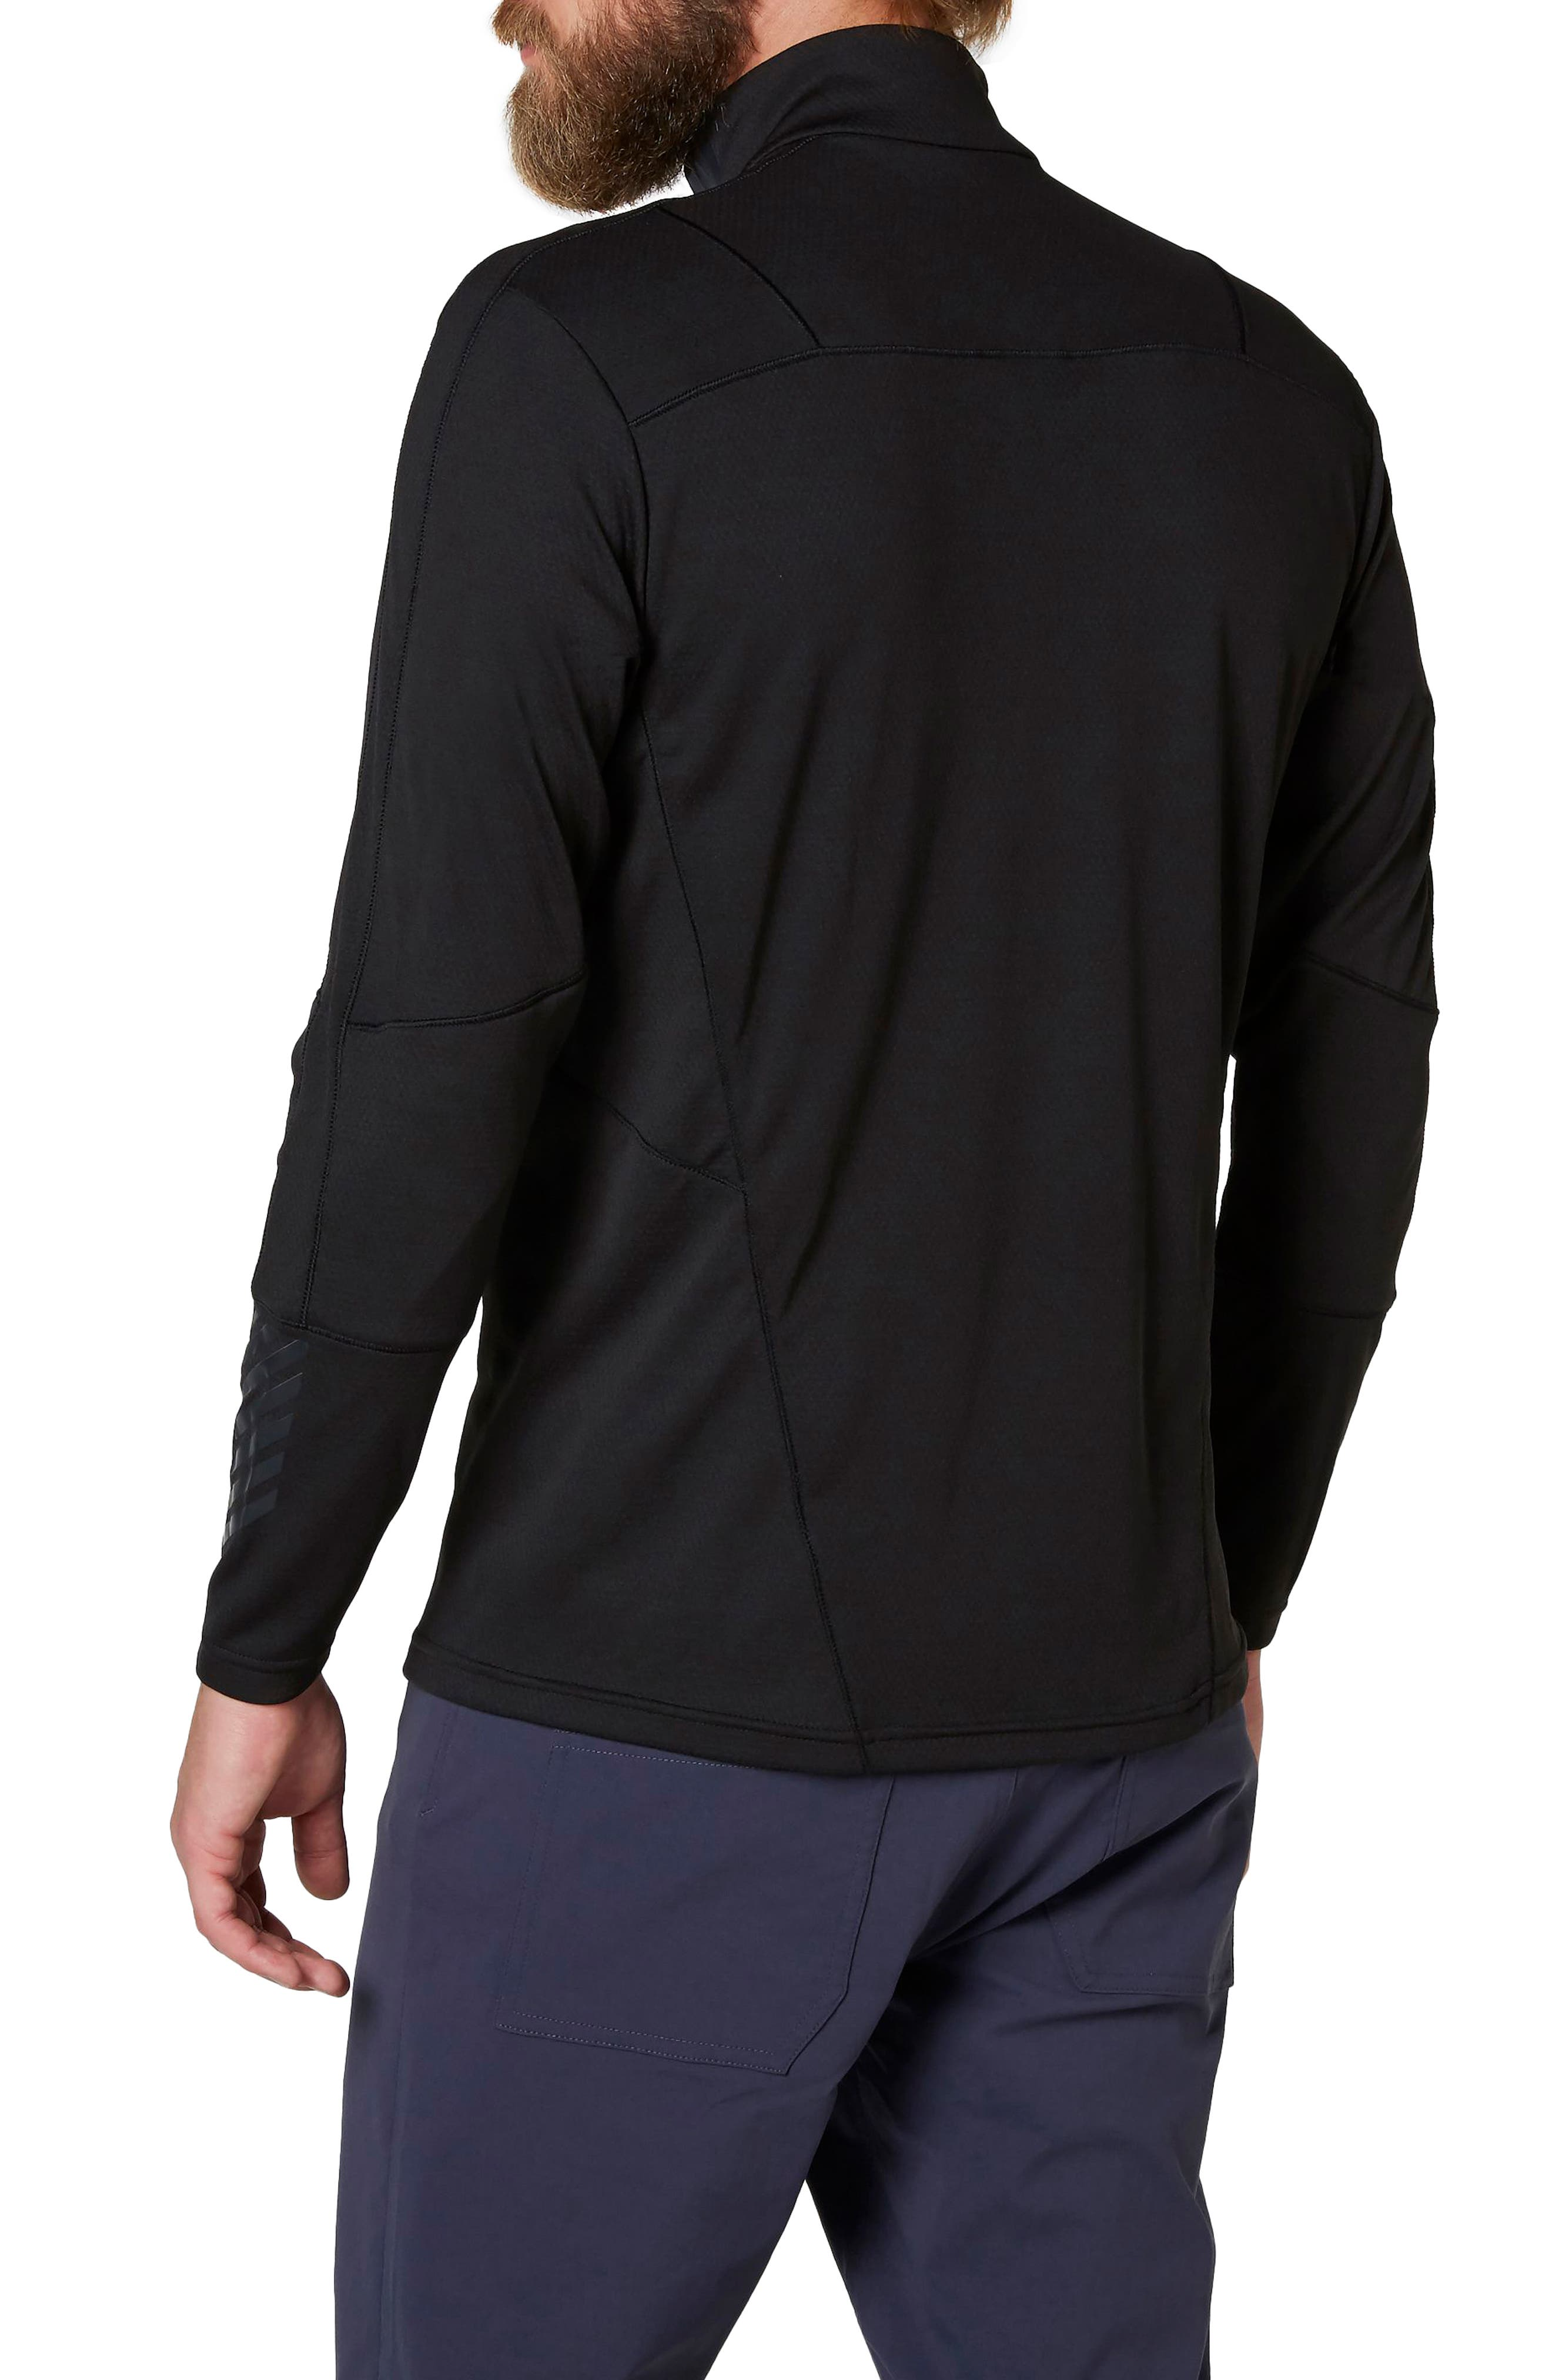 HH<sup>®</sup> Lifa Quarter Zip Pullover,                             Alternate thumbnail 2, color,                             001